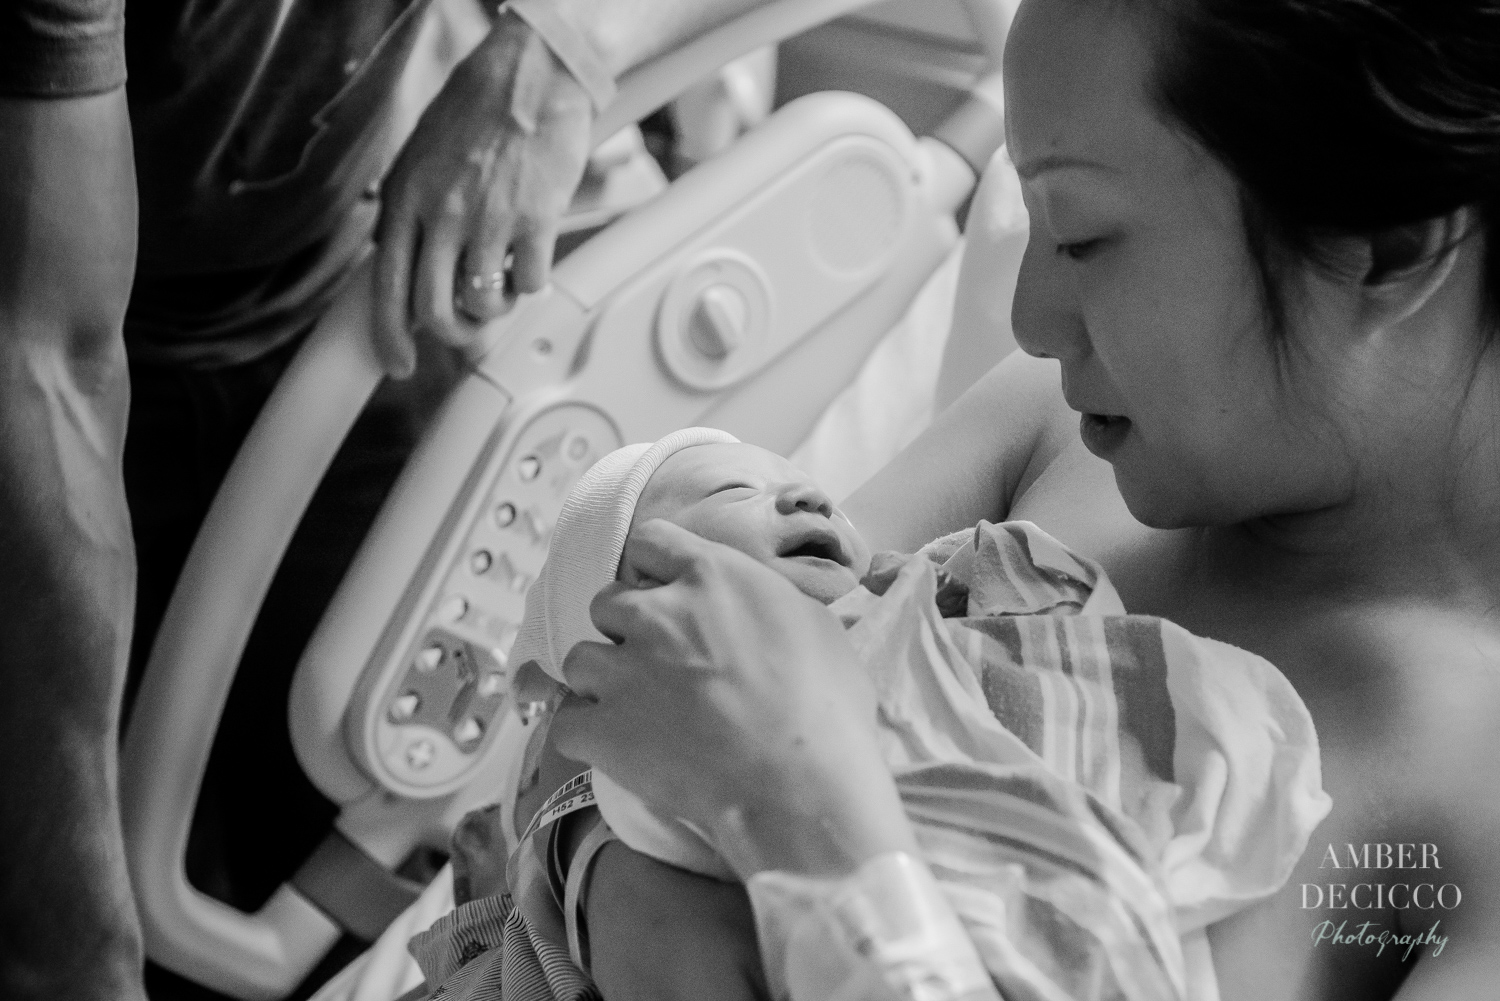 Mom and dad admiring their baby | Birth Photography ©Amber DeCicco Photography